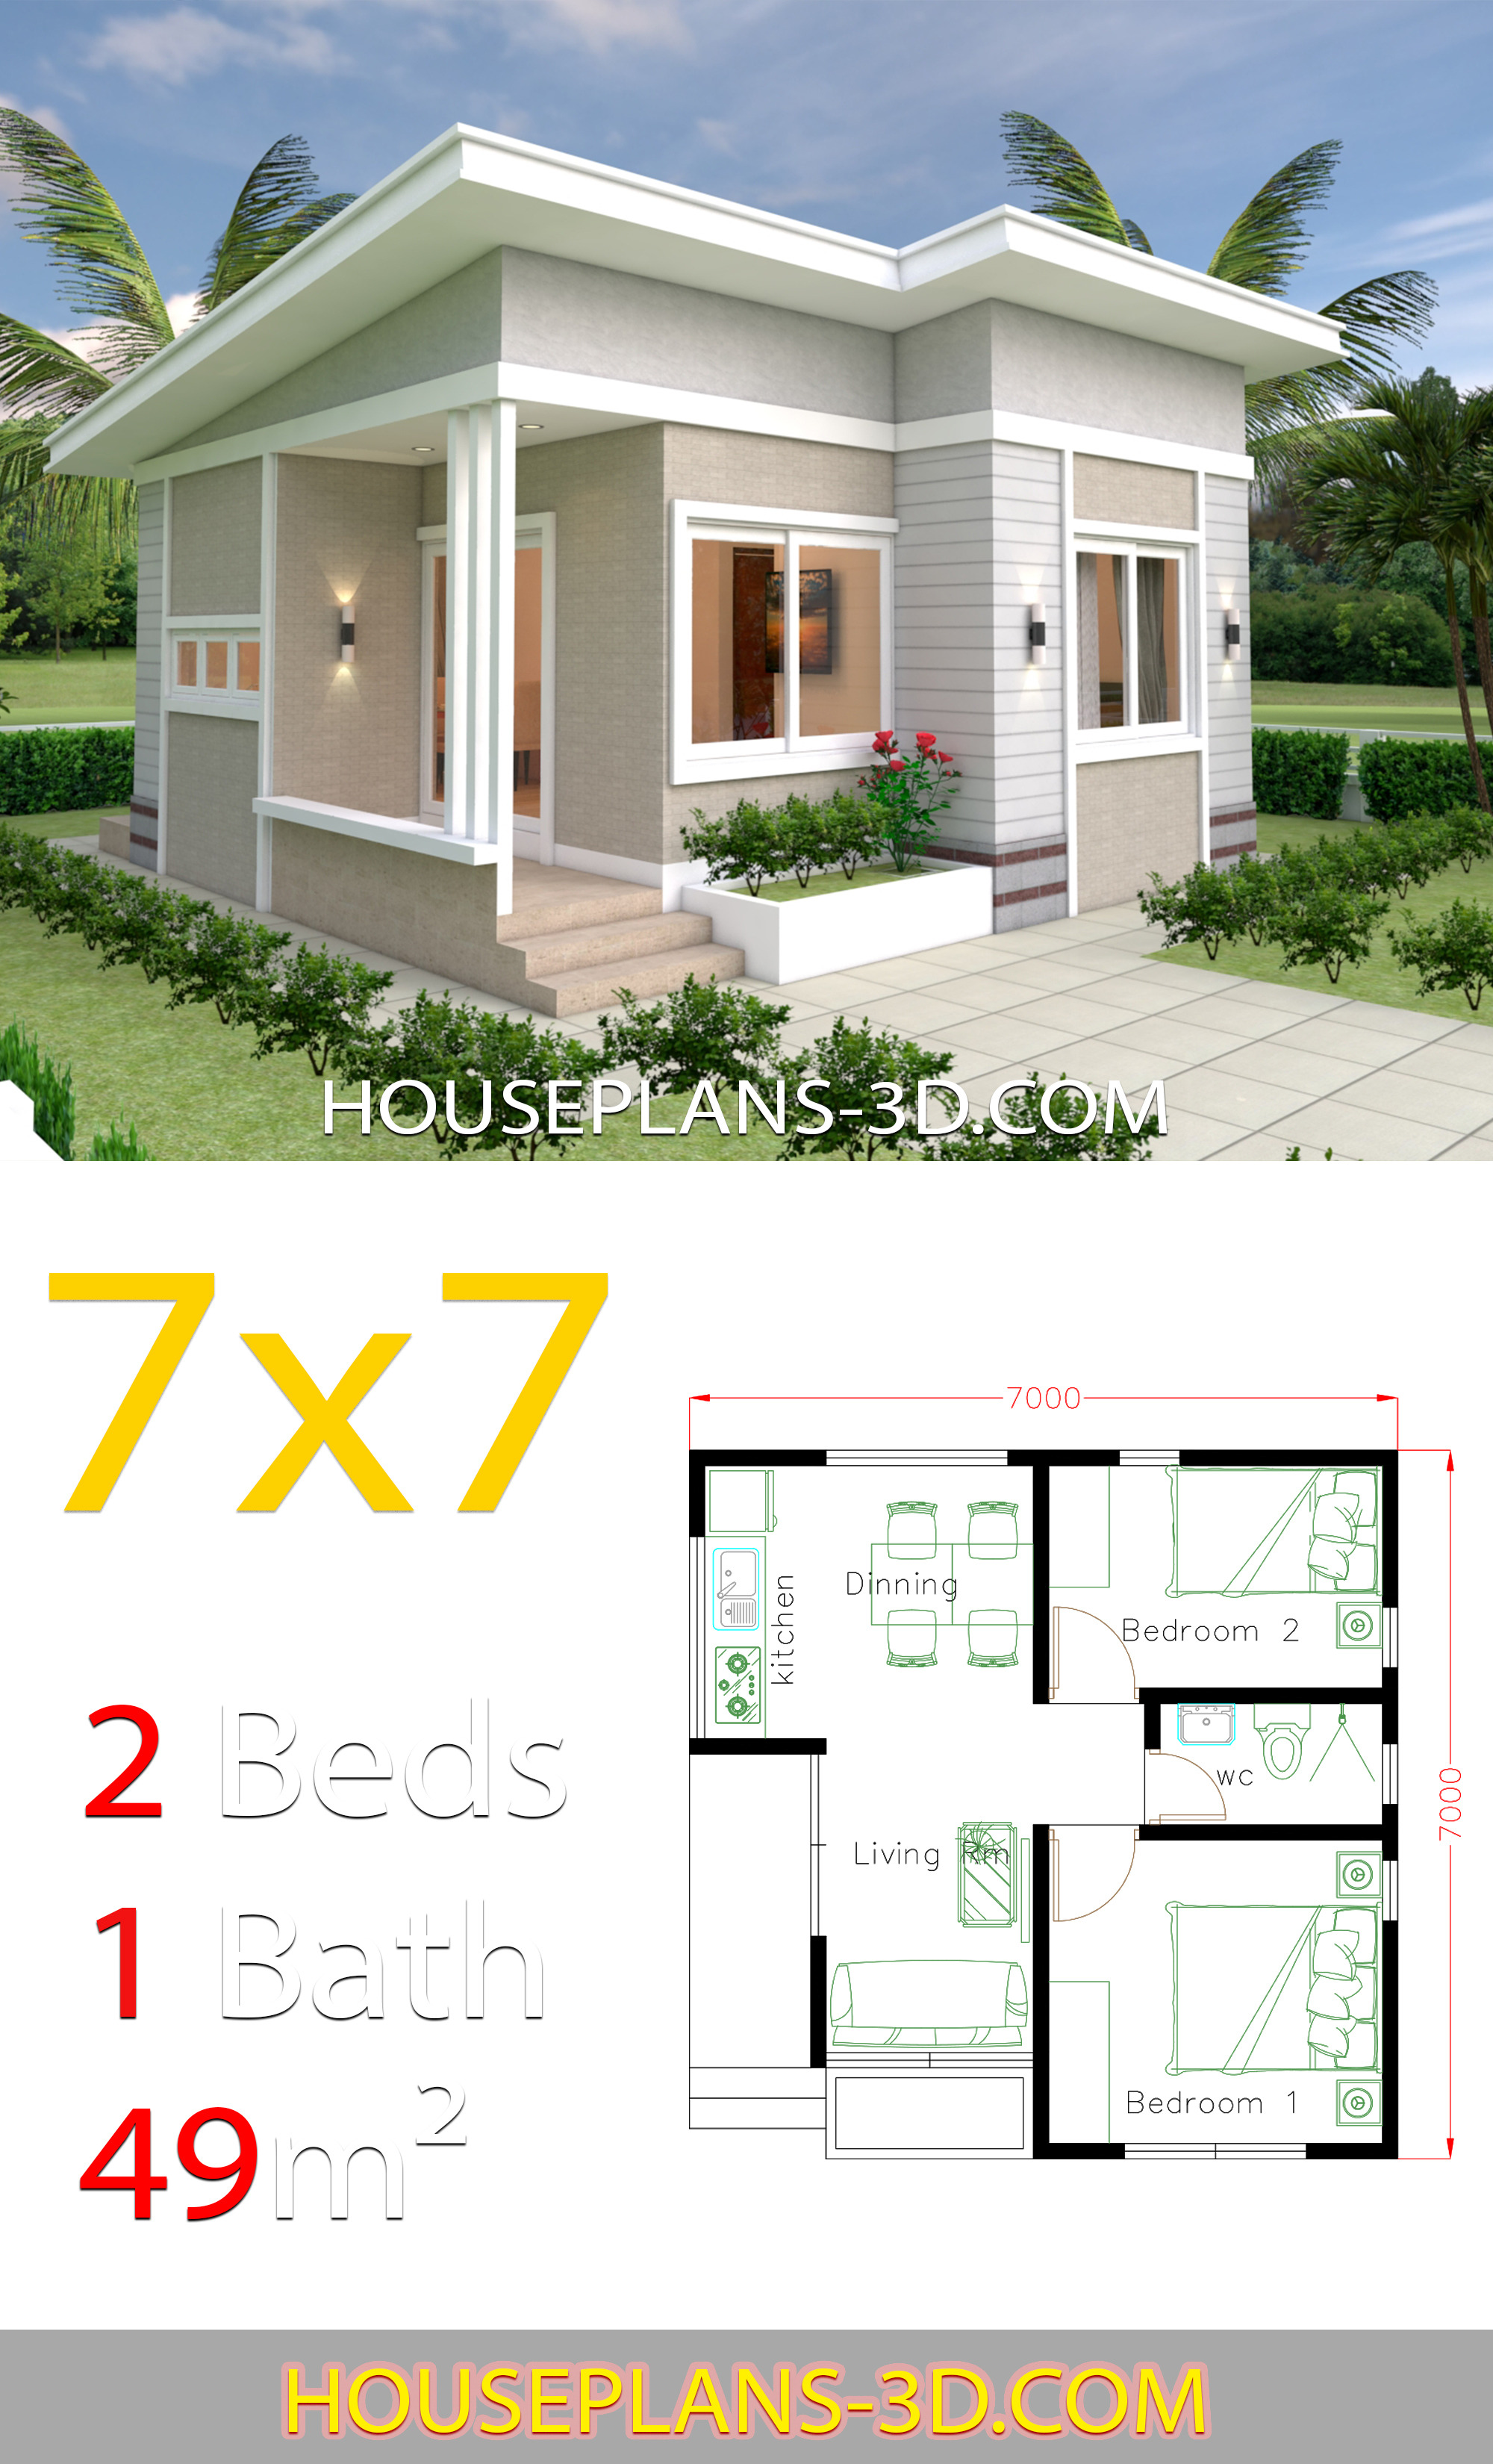 Small House Design Pictures New Small House Design Plans 7x7 with 2 Bedrooms